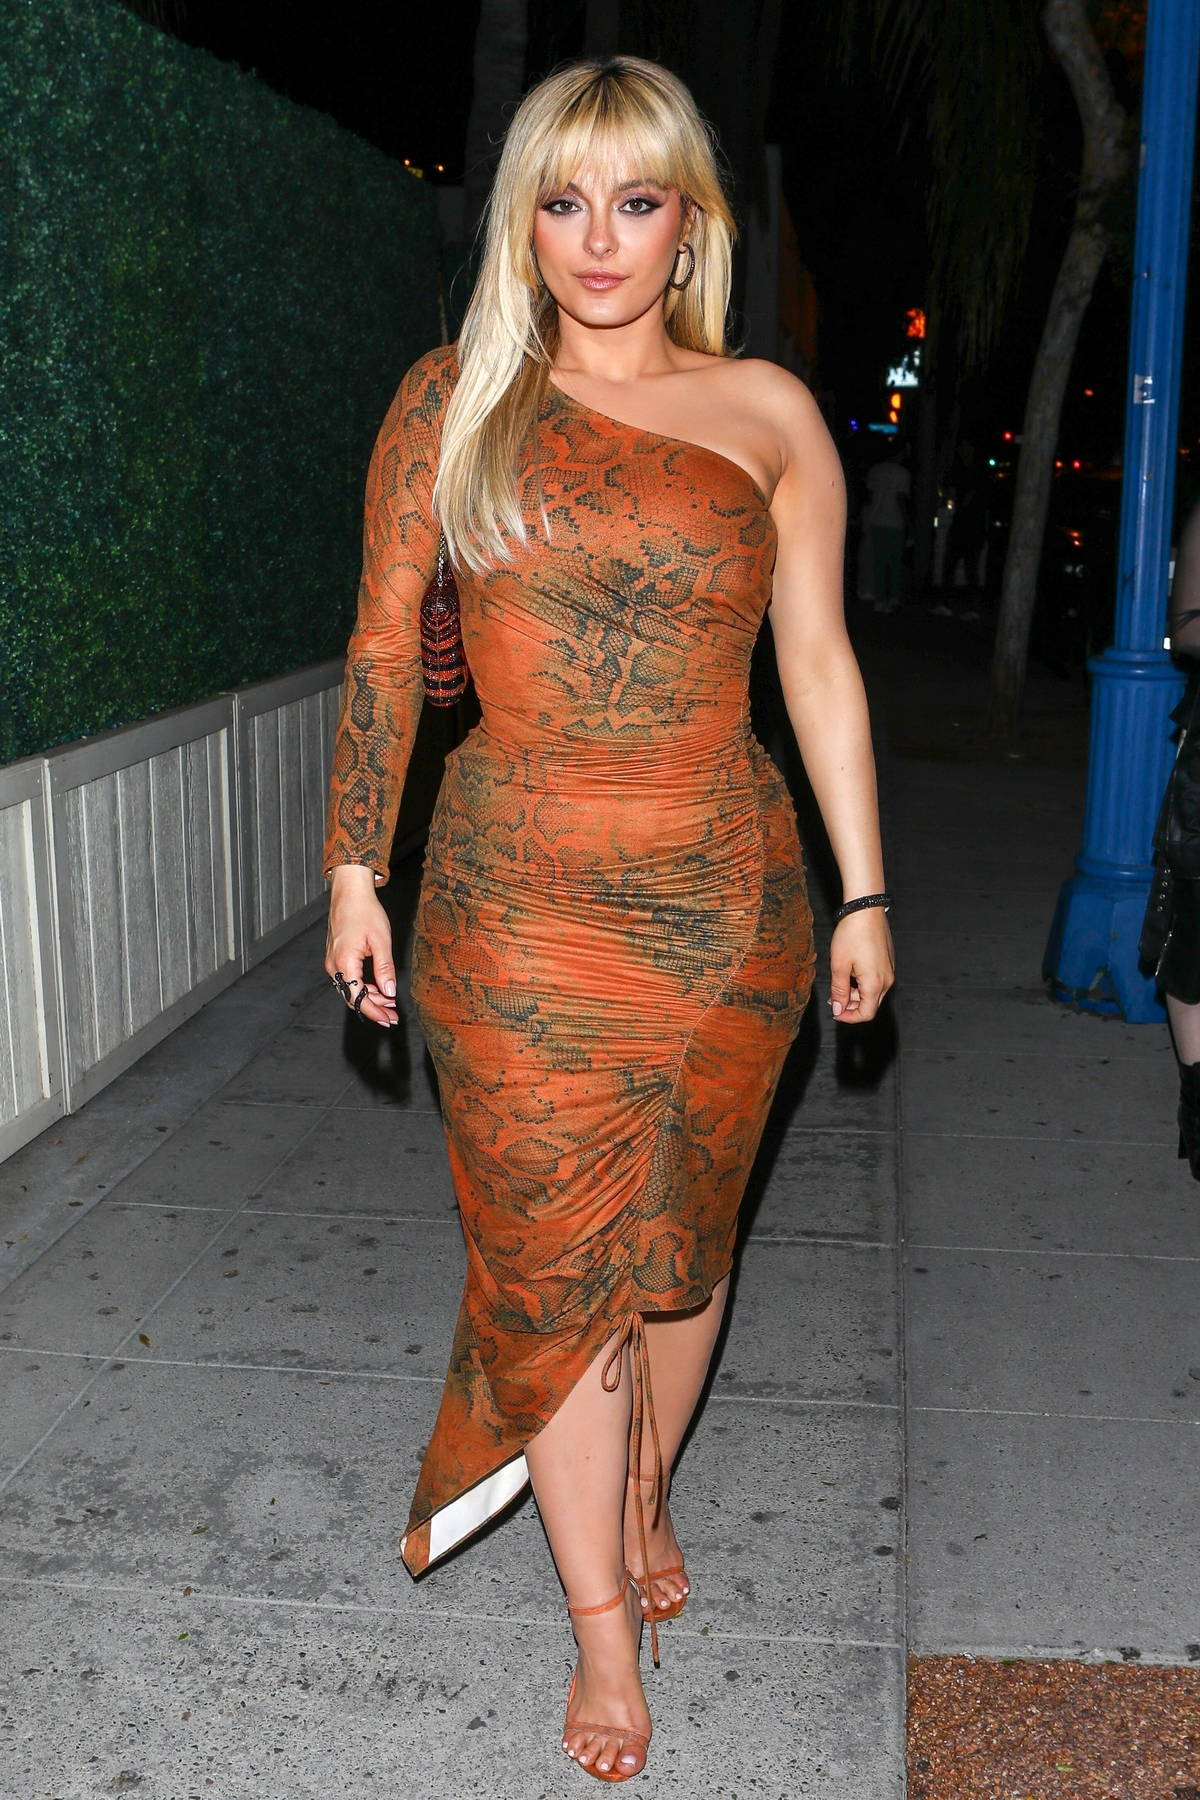 Bebe Rexha looks stunning in a bodycon dress attending Charli D'Amelio's birthday party at Delilah in West Hollywood, California